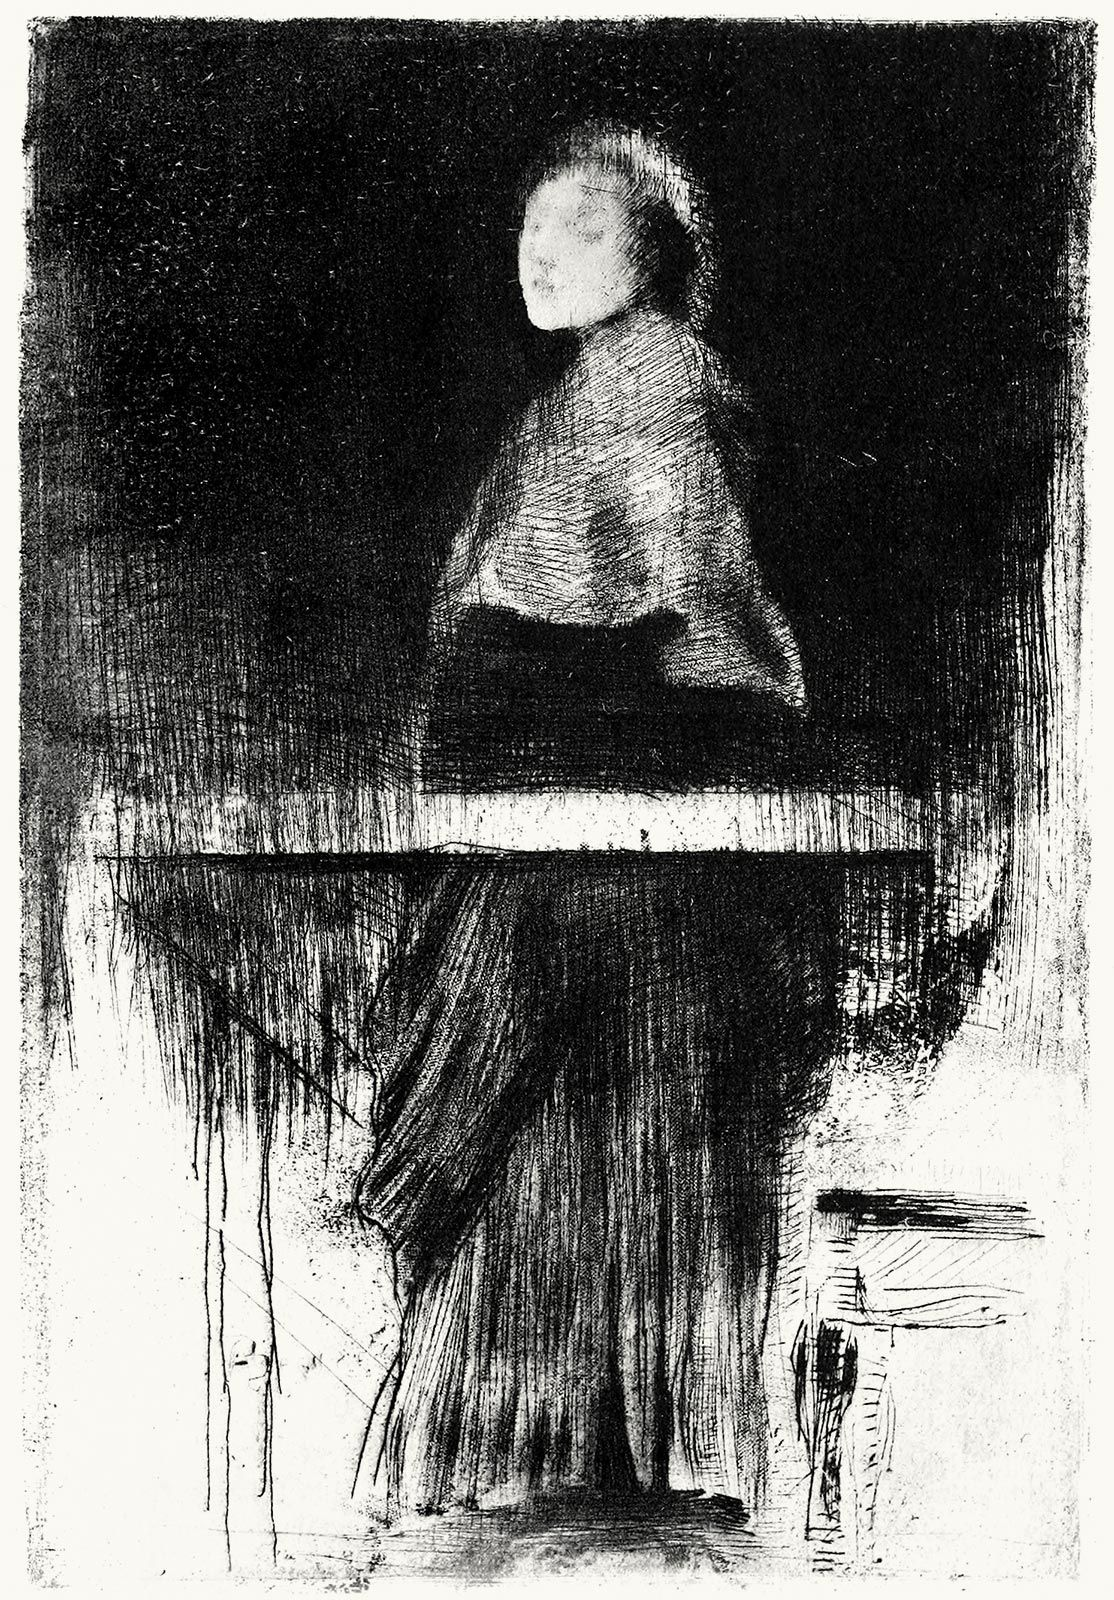 oldbookillustrations:    Woman with a cape.  Albert Besnard, From Les eaux-fortes de Besnard (The etchings of Besnard), by André-Charles Coppier, Paris, 1920.  (Source: archive.org)  Thank you oldbookillustrations.